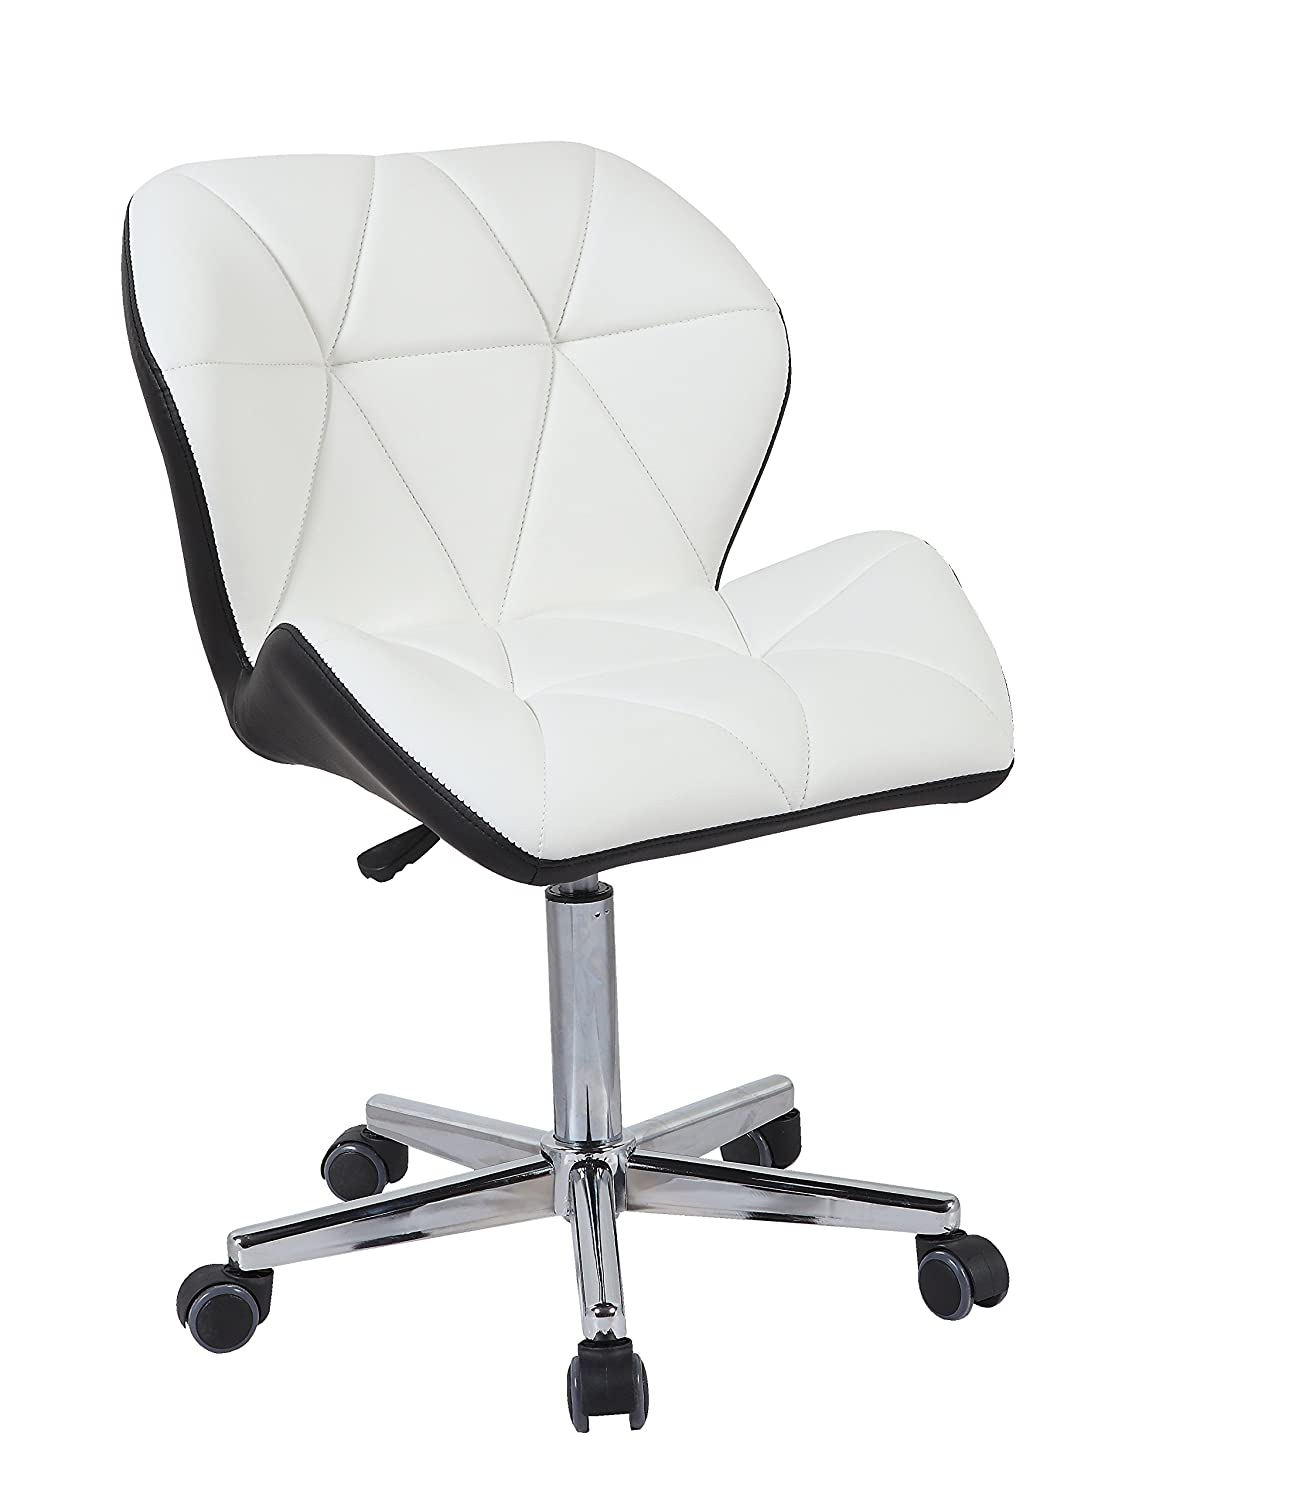 white chair unico canada office modern zuo furniture lifestyle p